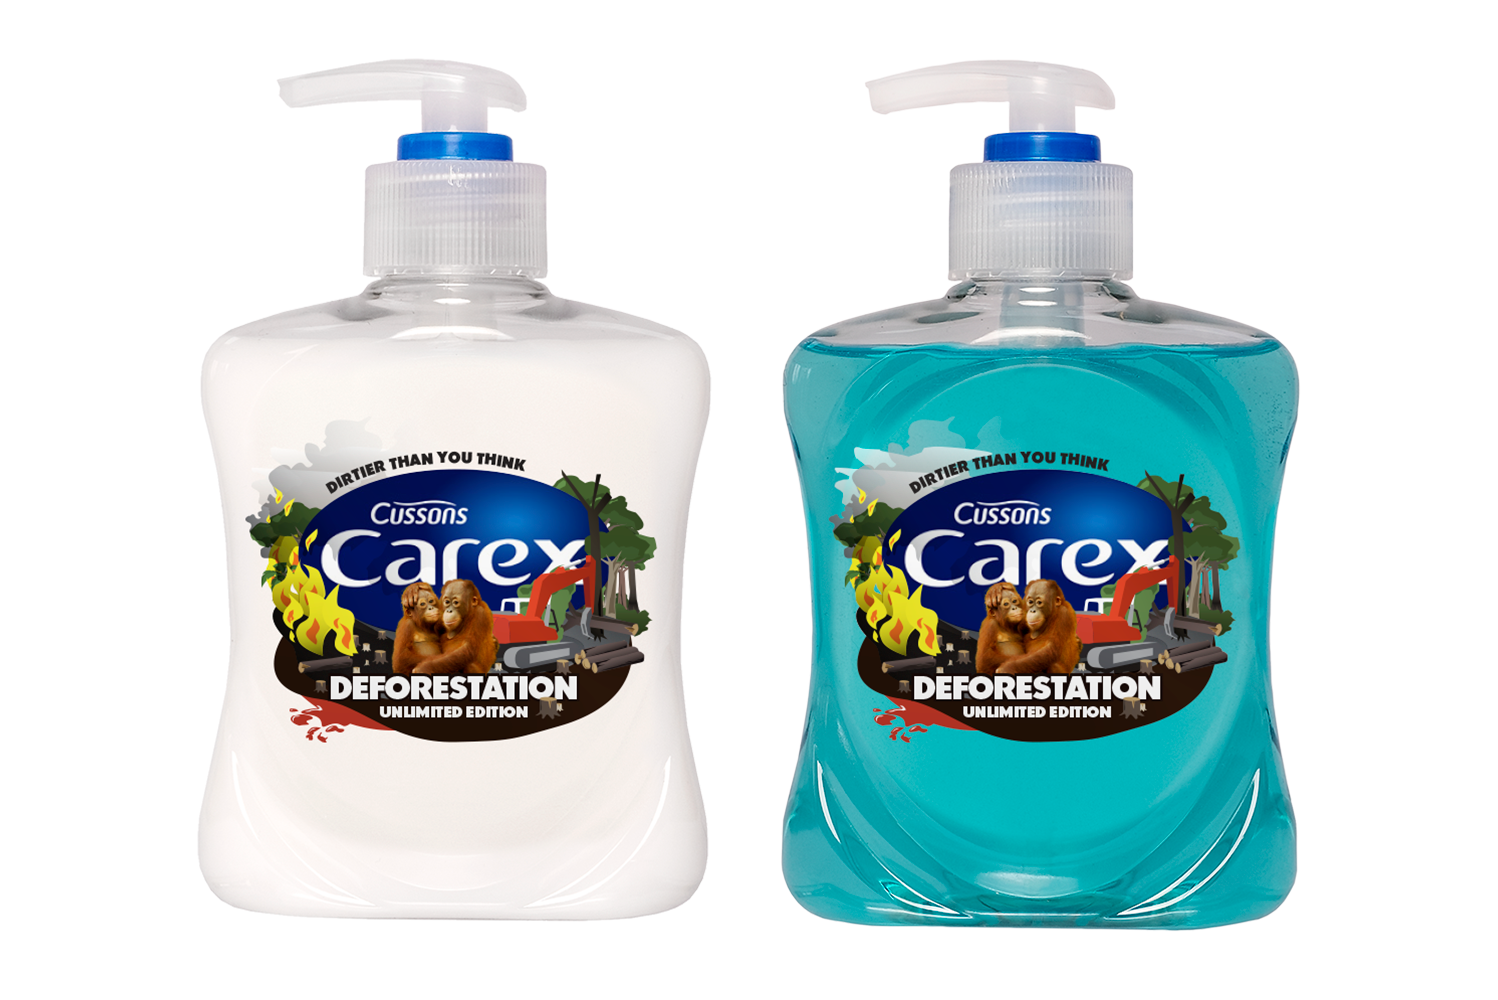 Greenpeace_Forests_Carex_Campaign_PackLabel.png